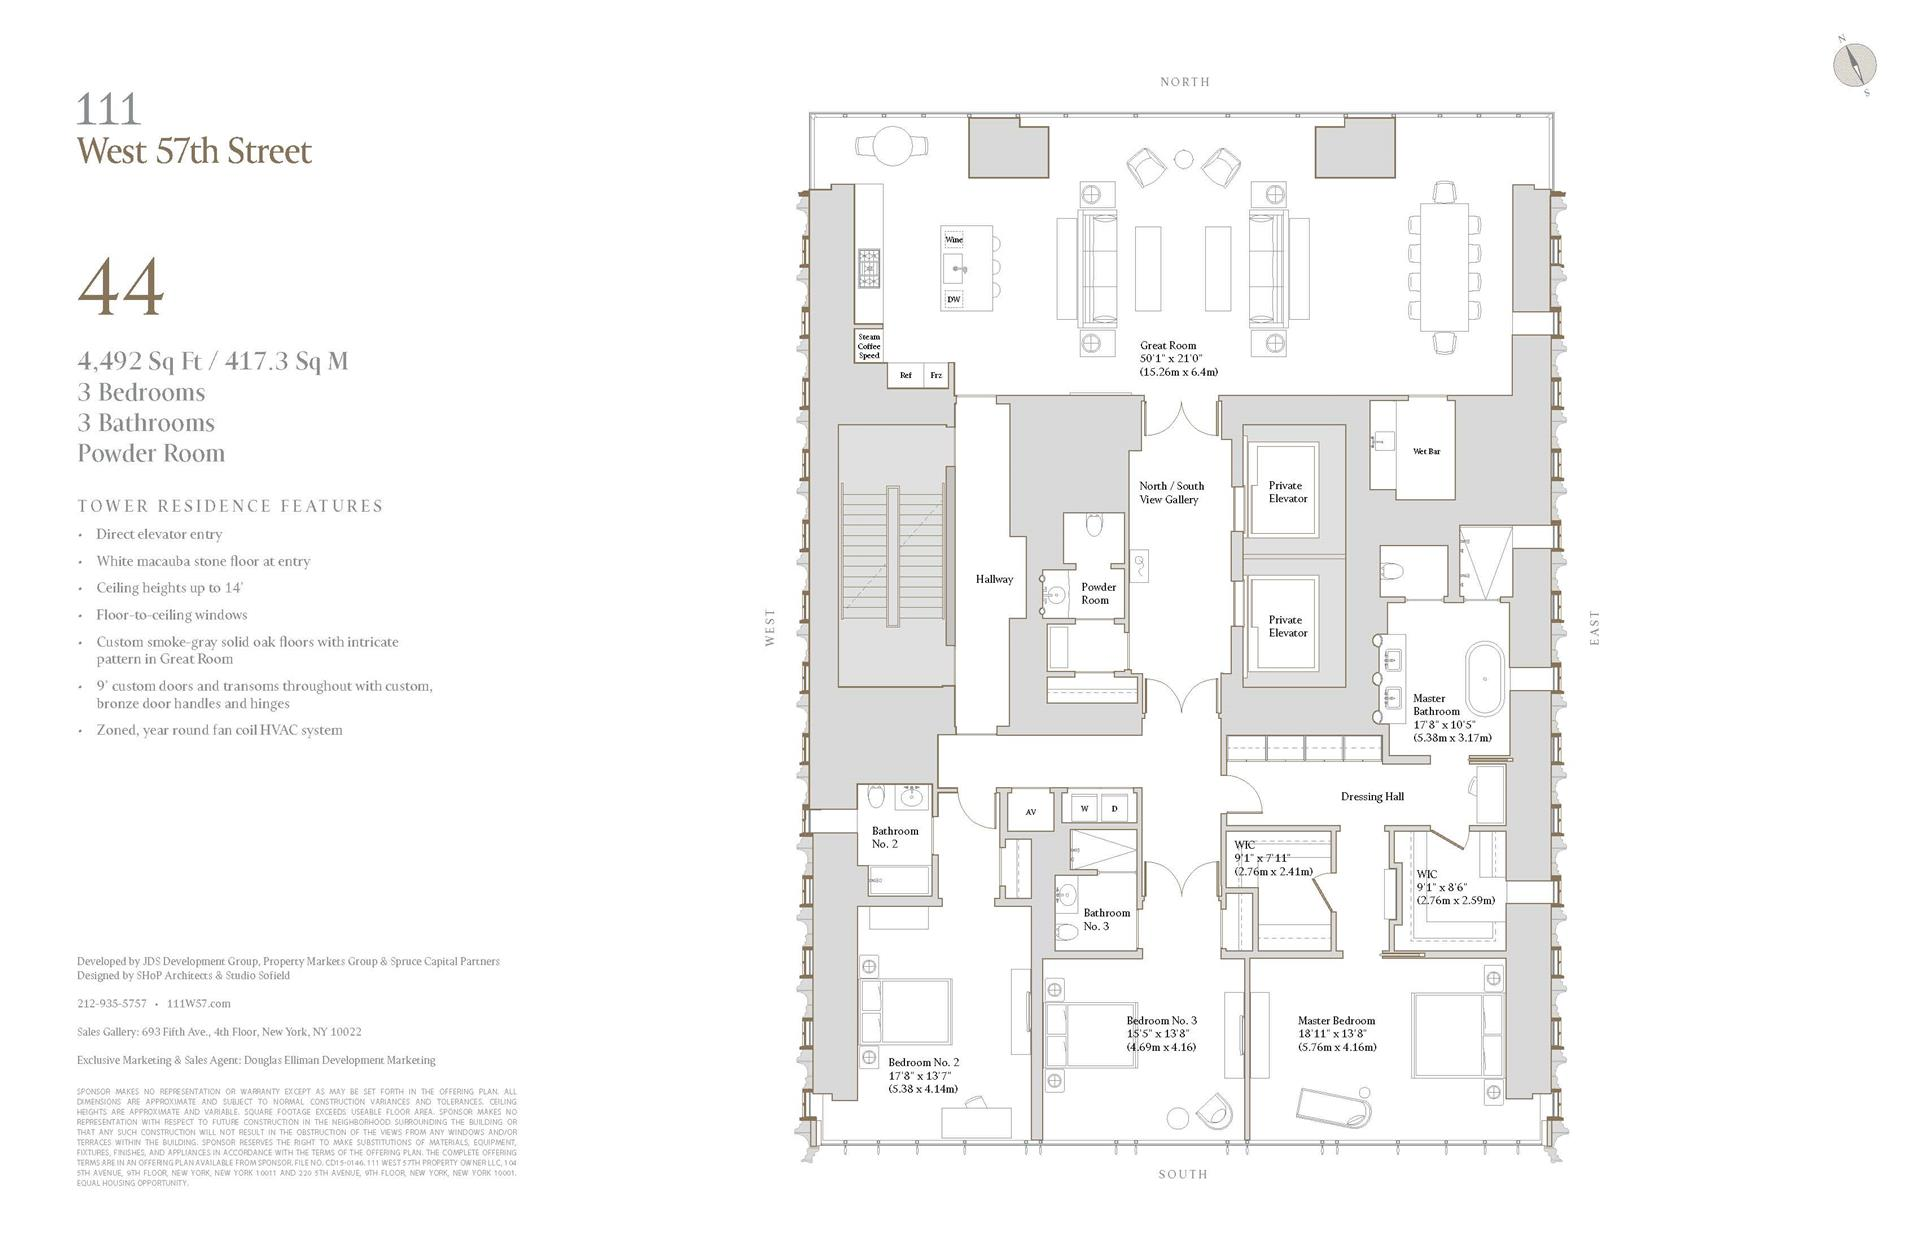 Floor plan of 111 West 57th Street, 44 - Central Park South, New York